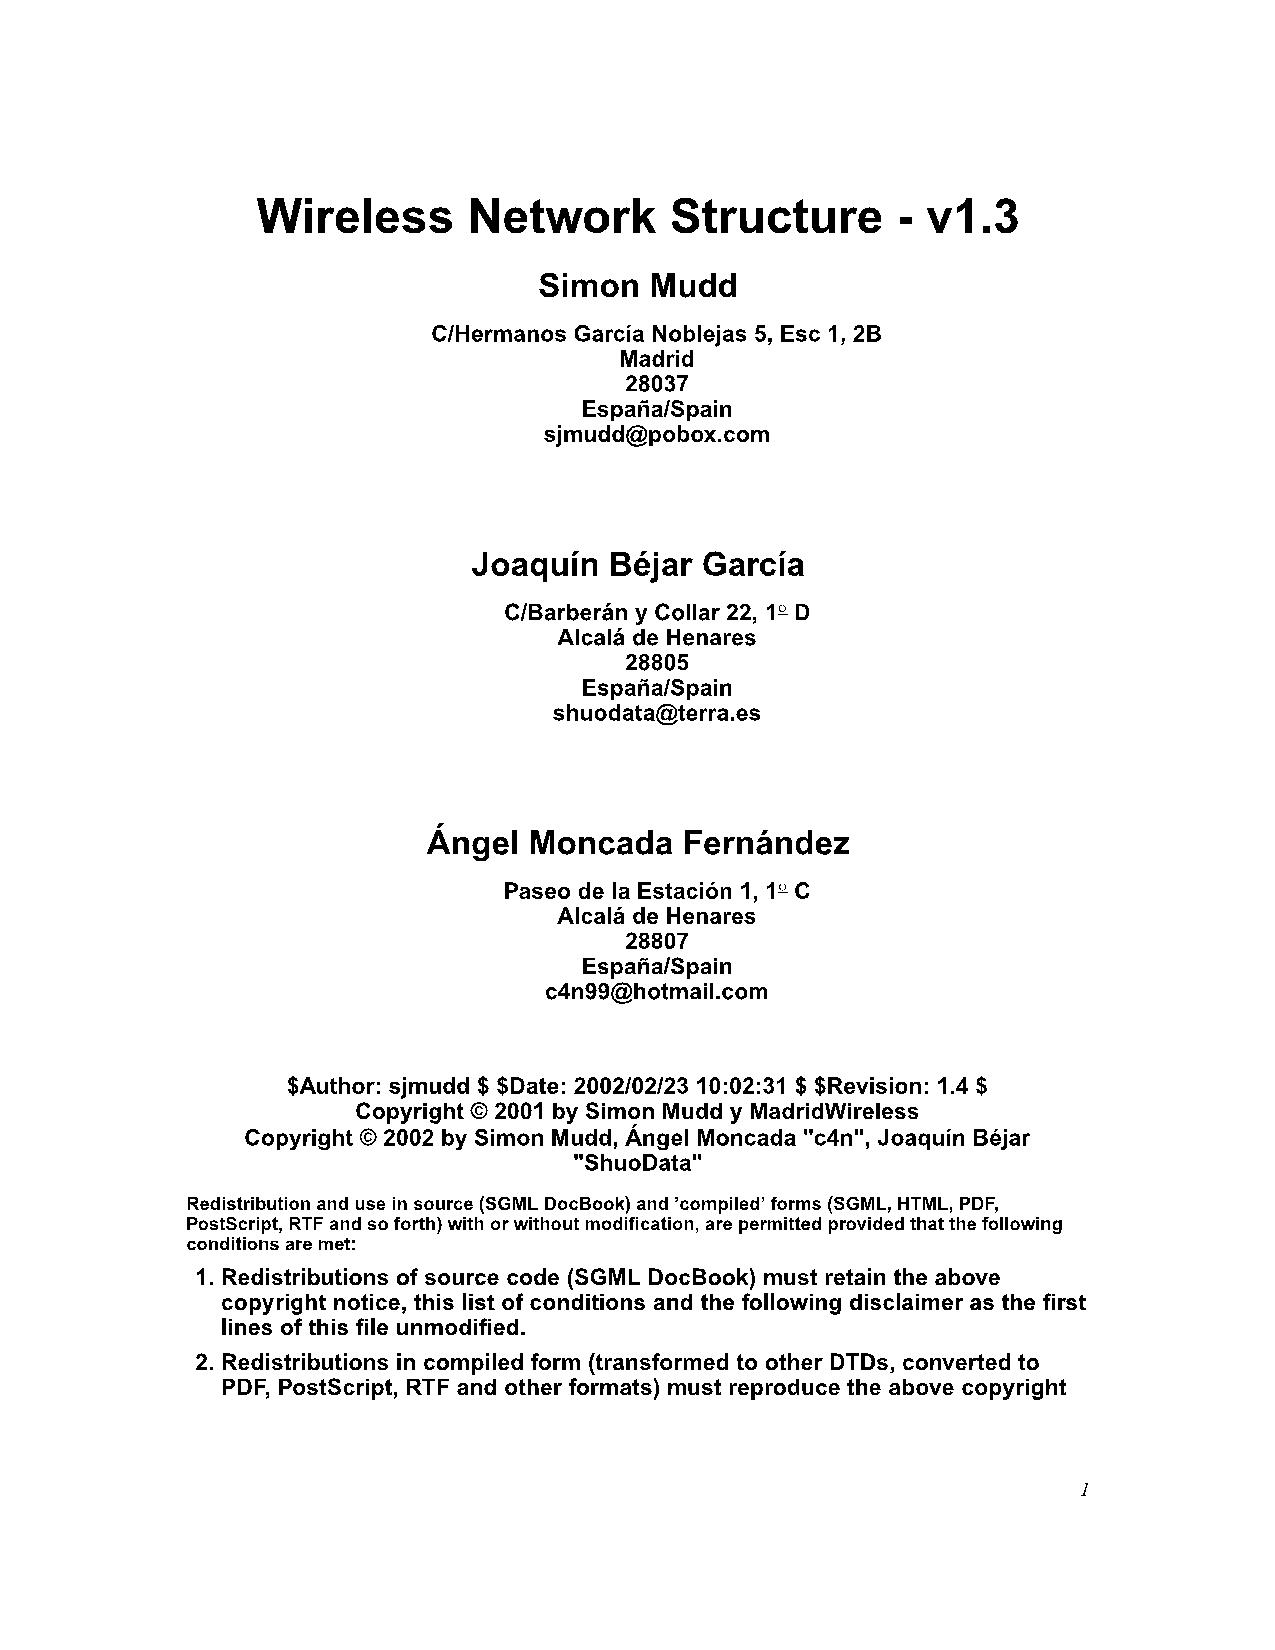 Wireless Network Structure - v1.3  20